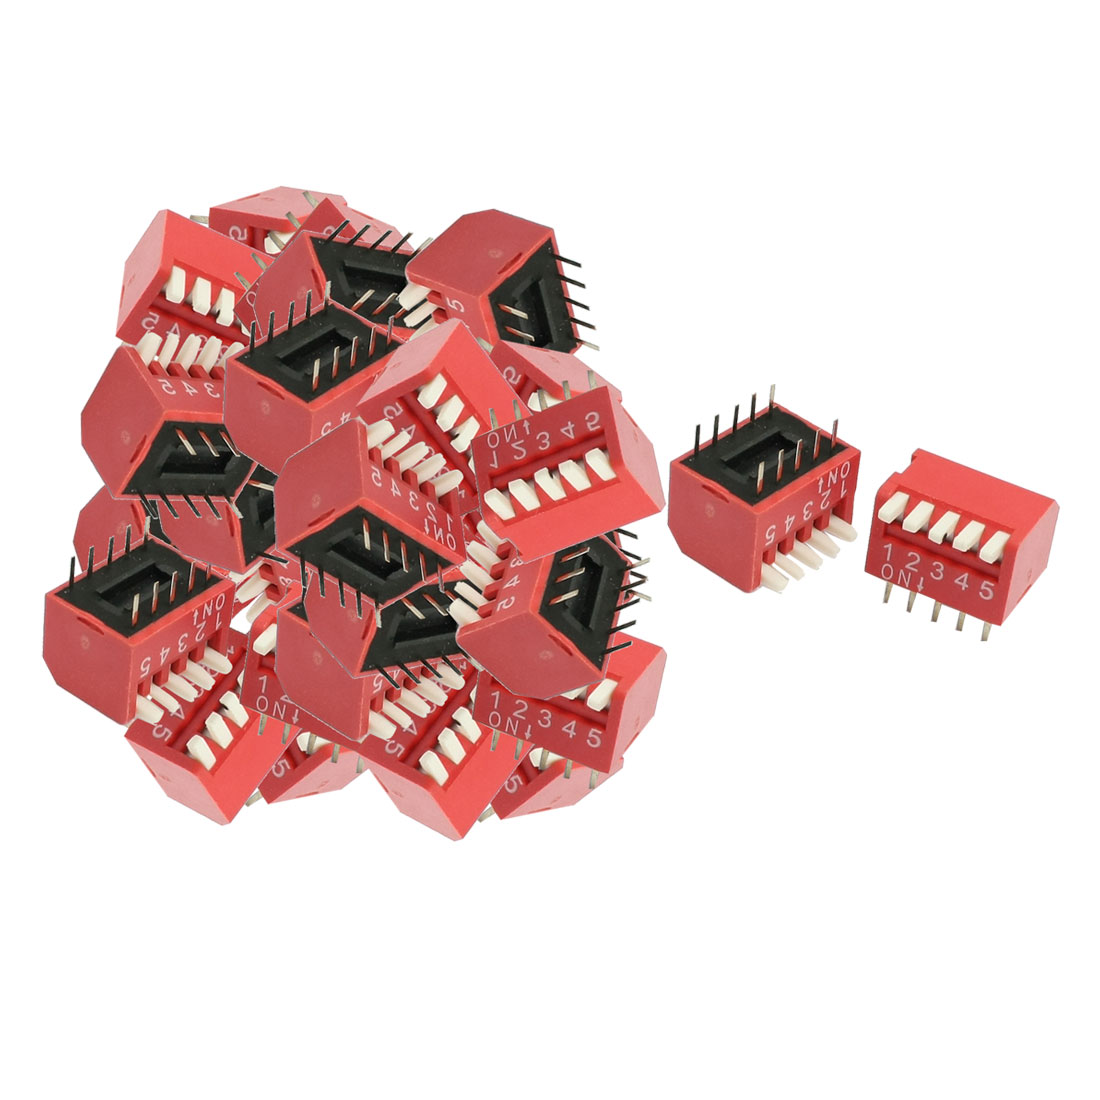 33 Pcs 2.54mm Pitch 5 Position Slide Style DIP Switches Red